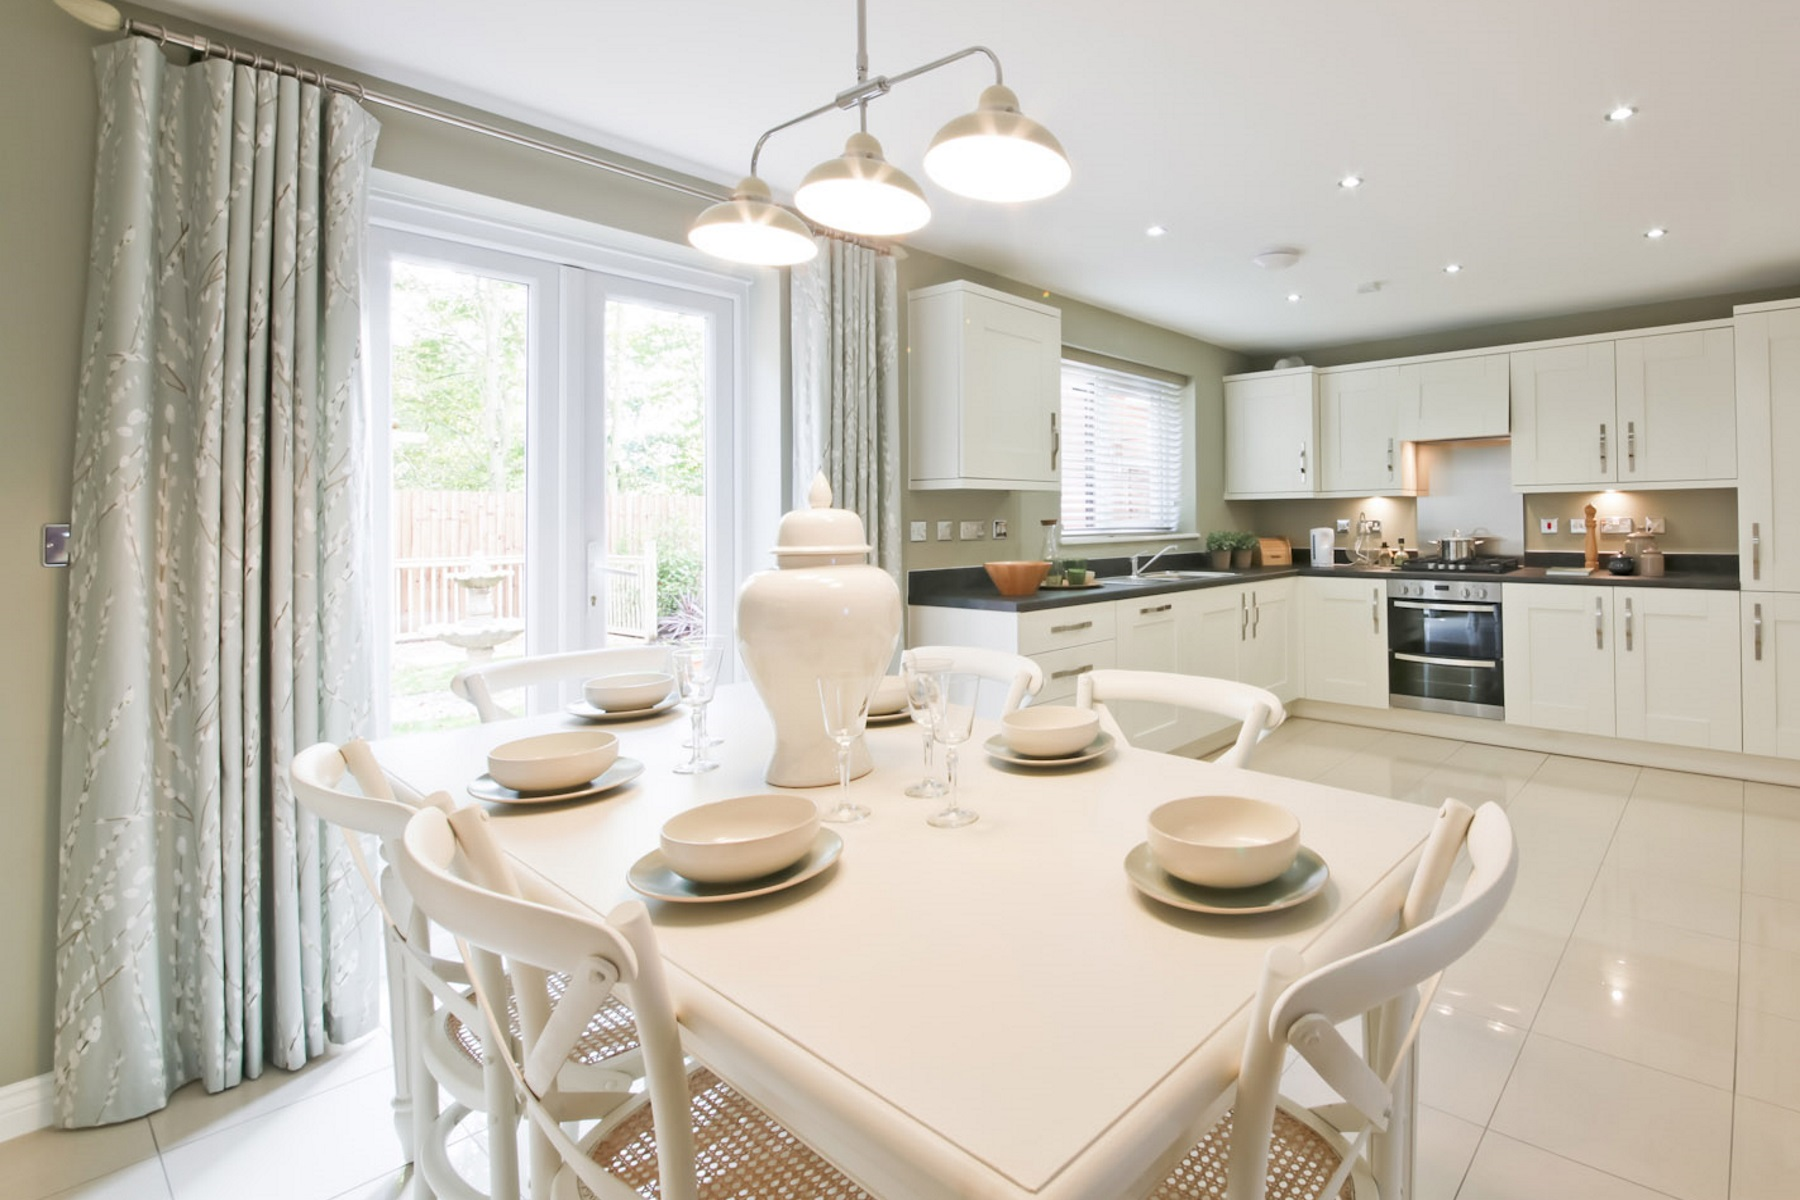 TW Exeter - Mayfield Gardens - Huxford example kitchen2